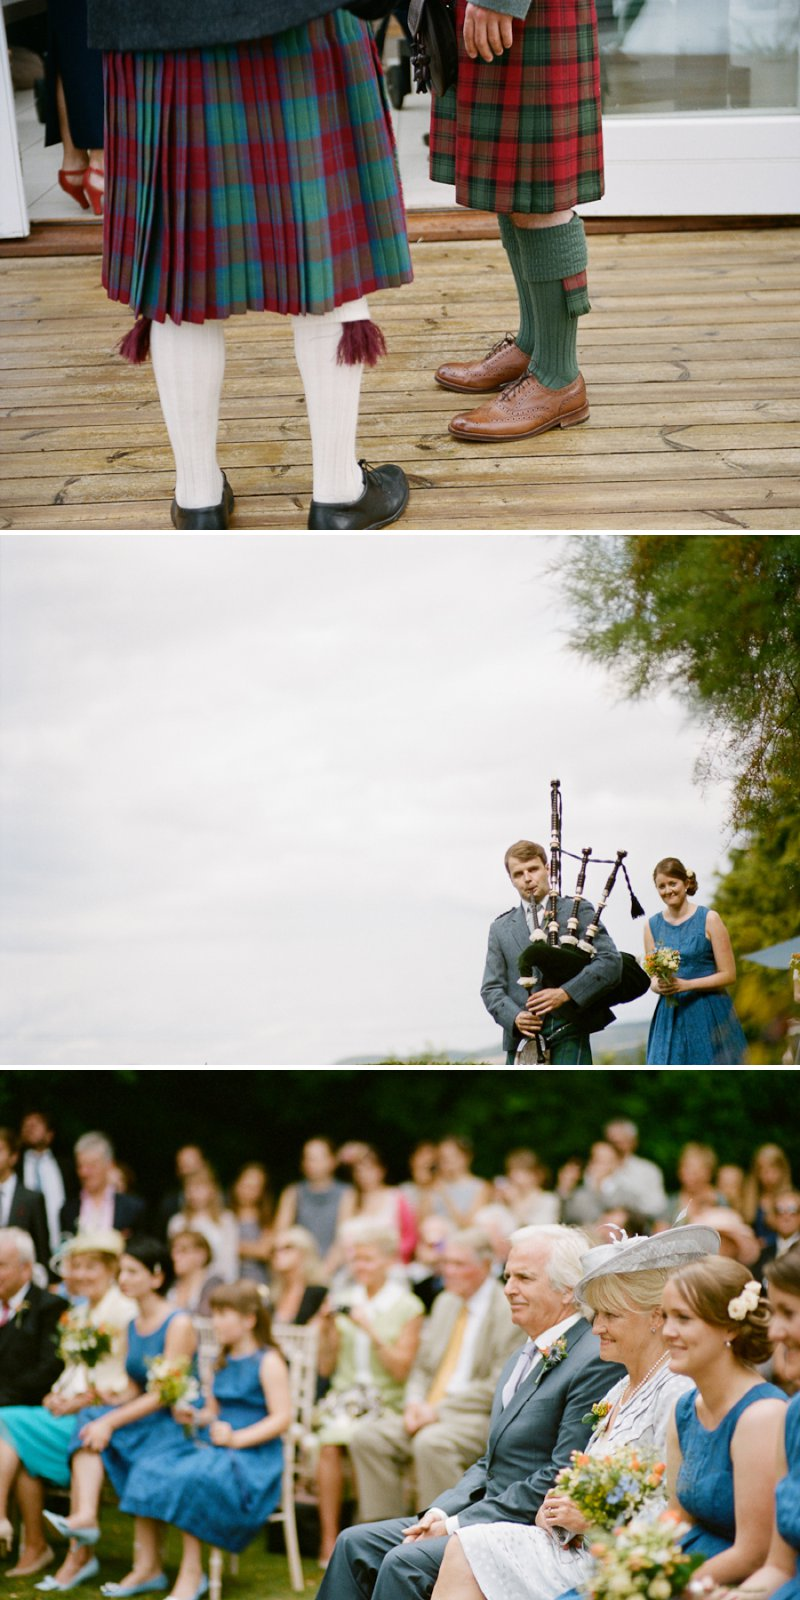 A Marquee Wedding In Buckinghamshire With A Country Fete Theme With Bride In Vintage Tea Length Dress From Heavenly Vintage Brides And Groom In Douglas Tartan Kilt Images Shot On Film By Peachey Photography 4